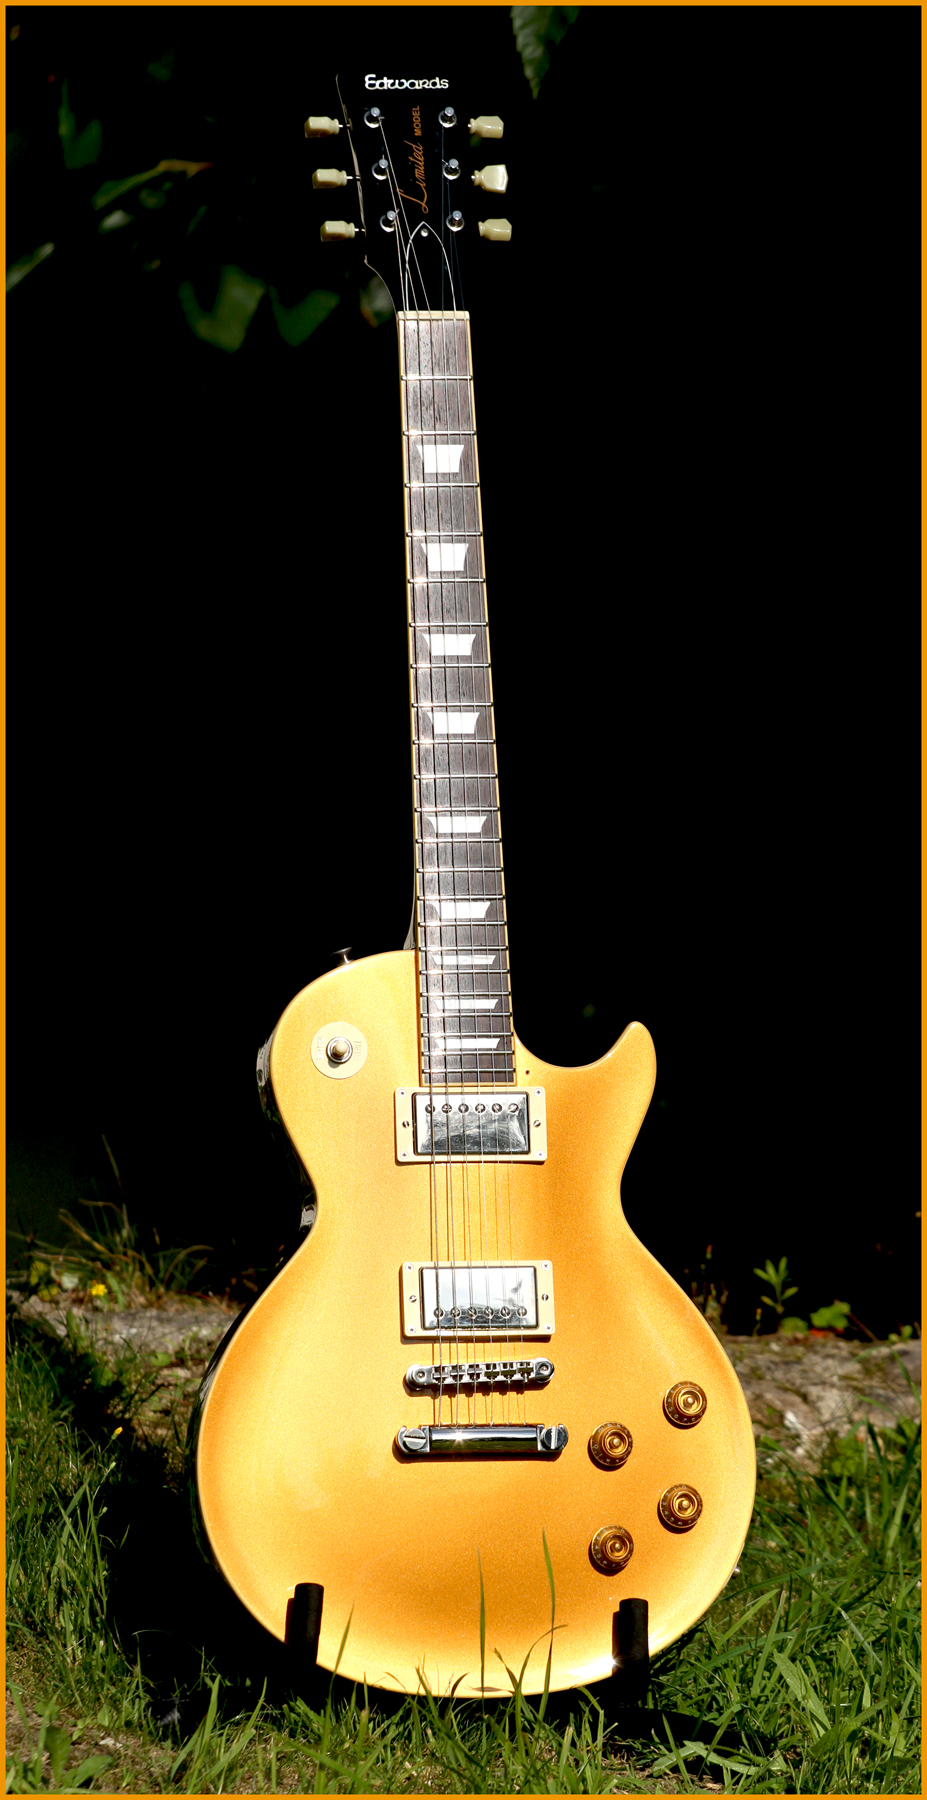 Edwards LP 92 Gold top 90304289e1